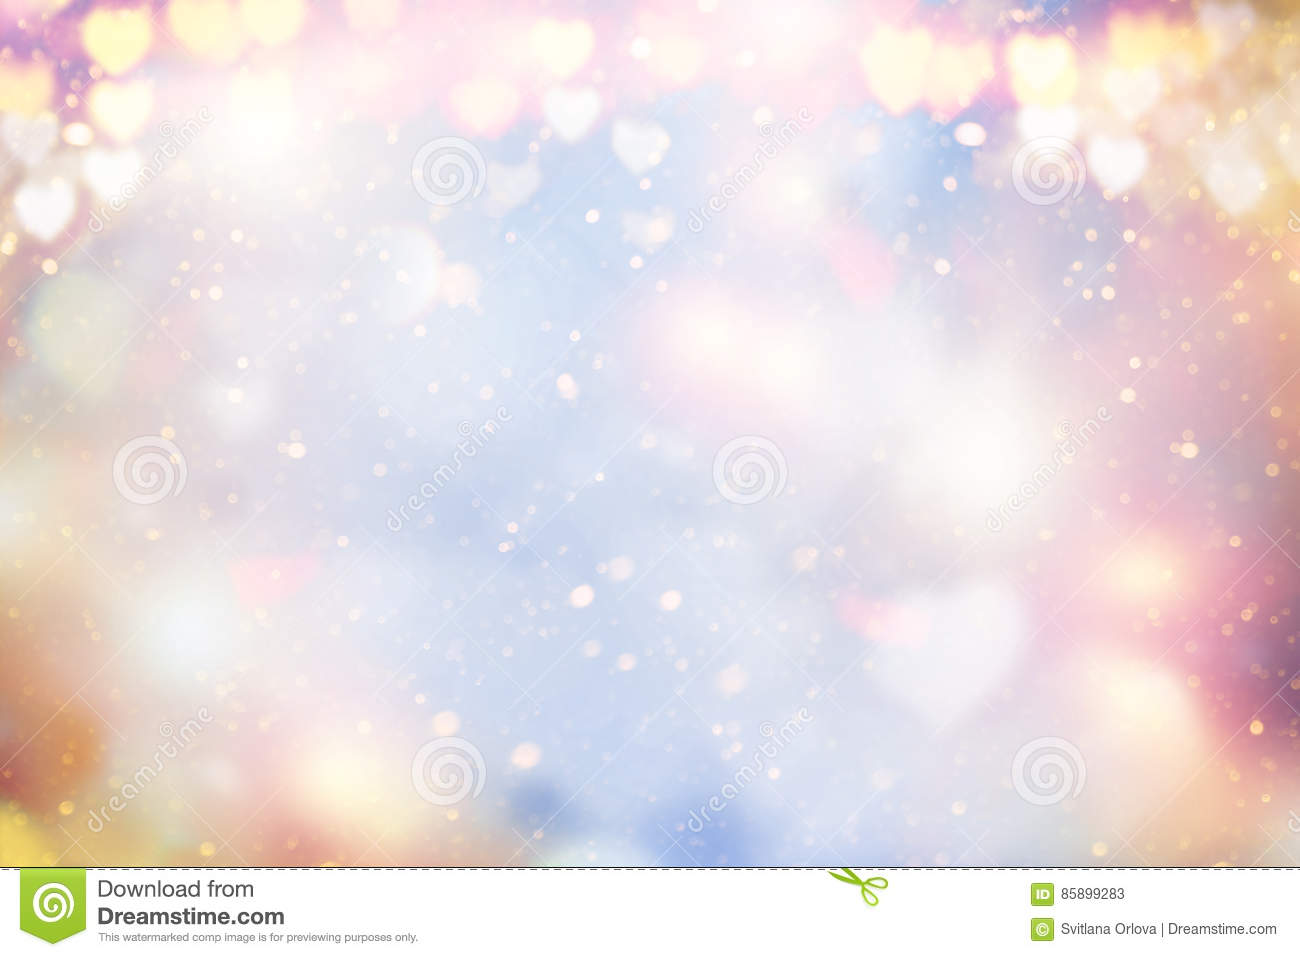 Bokeh Heart Shape Of Light Background Stock Footage Video: Holiday Abstract Pastel Glowing Blurred Background Blur